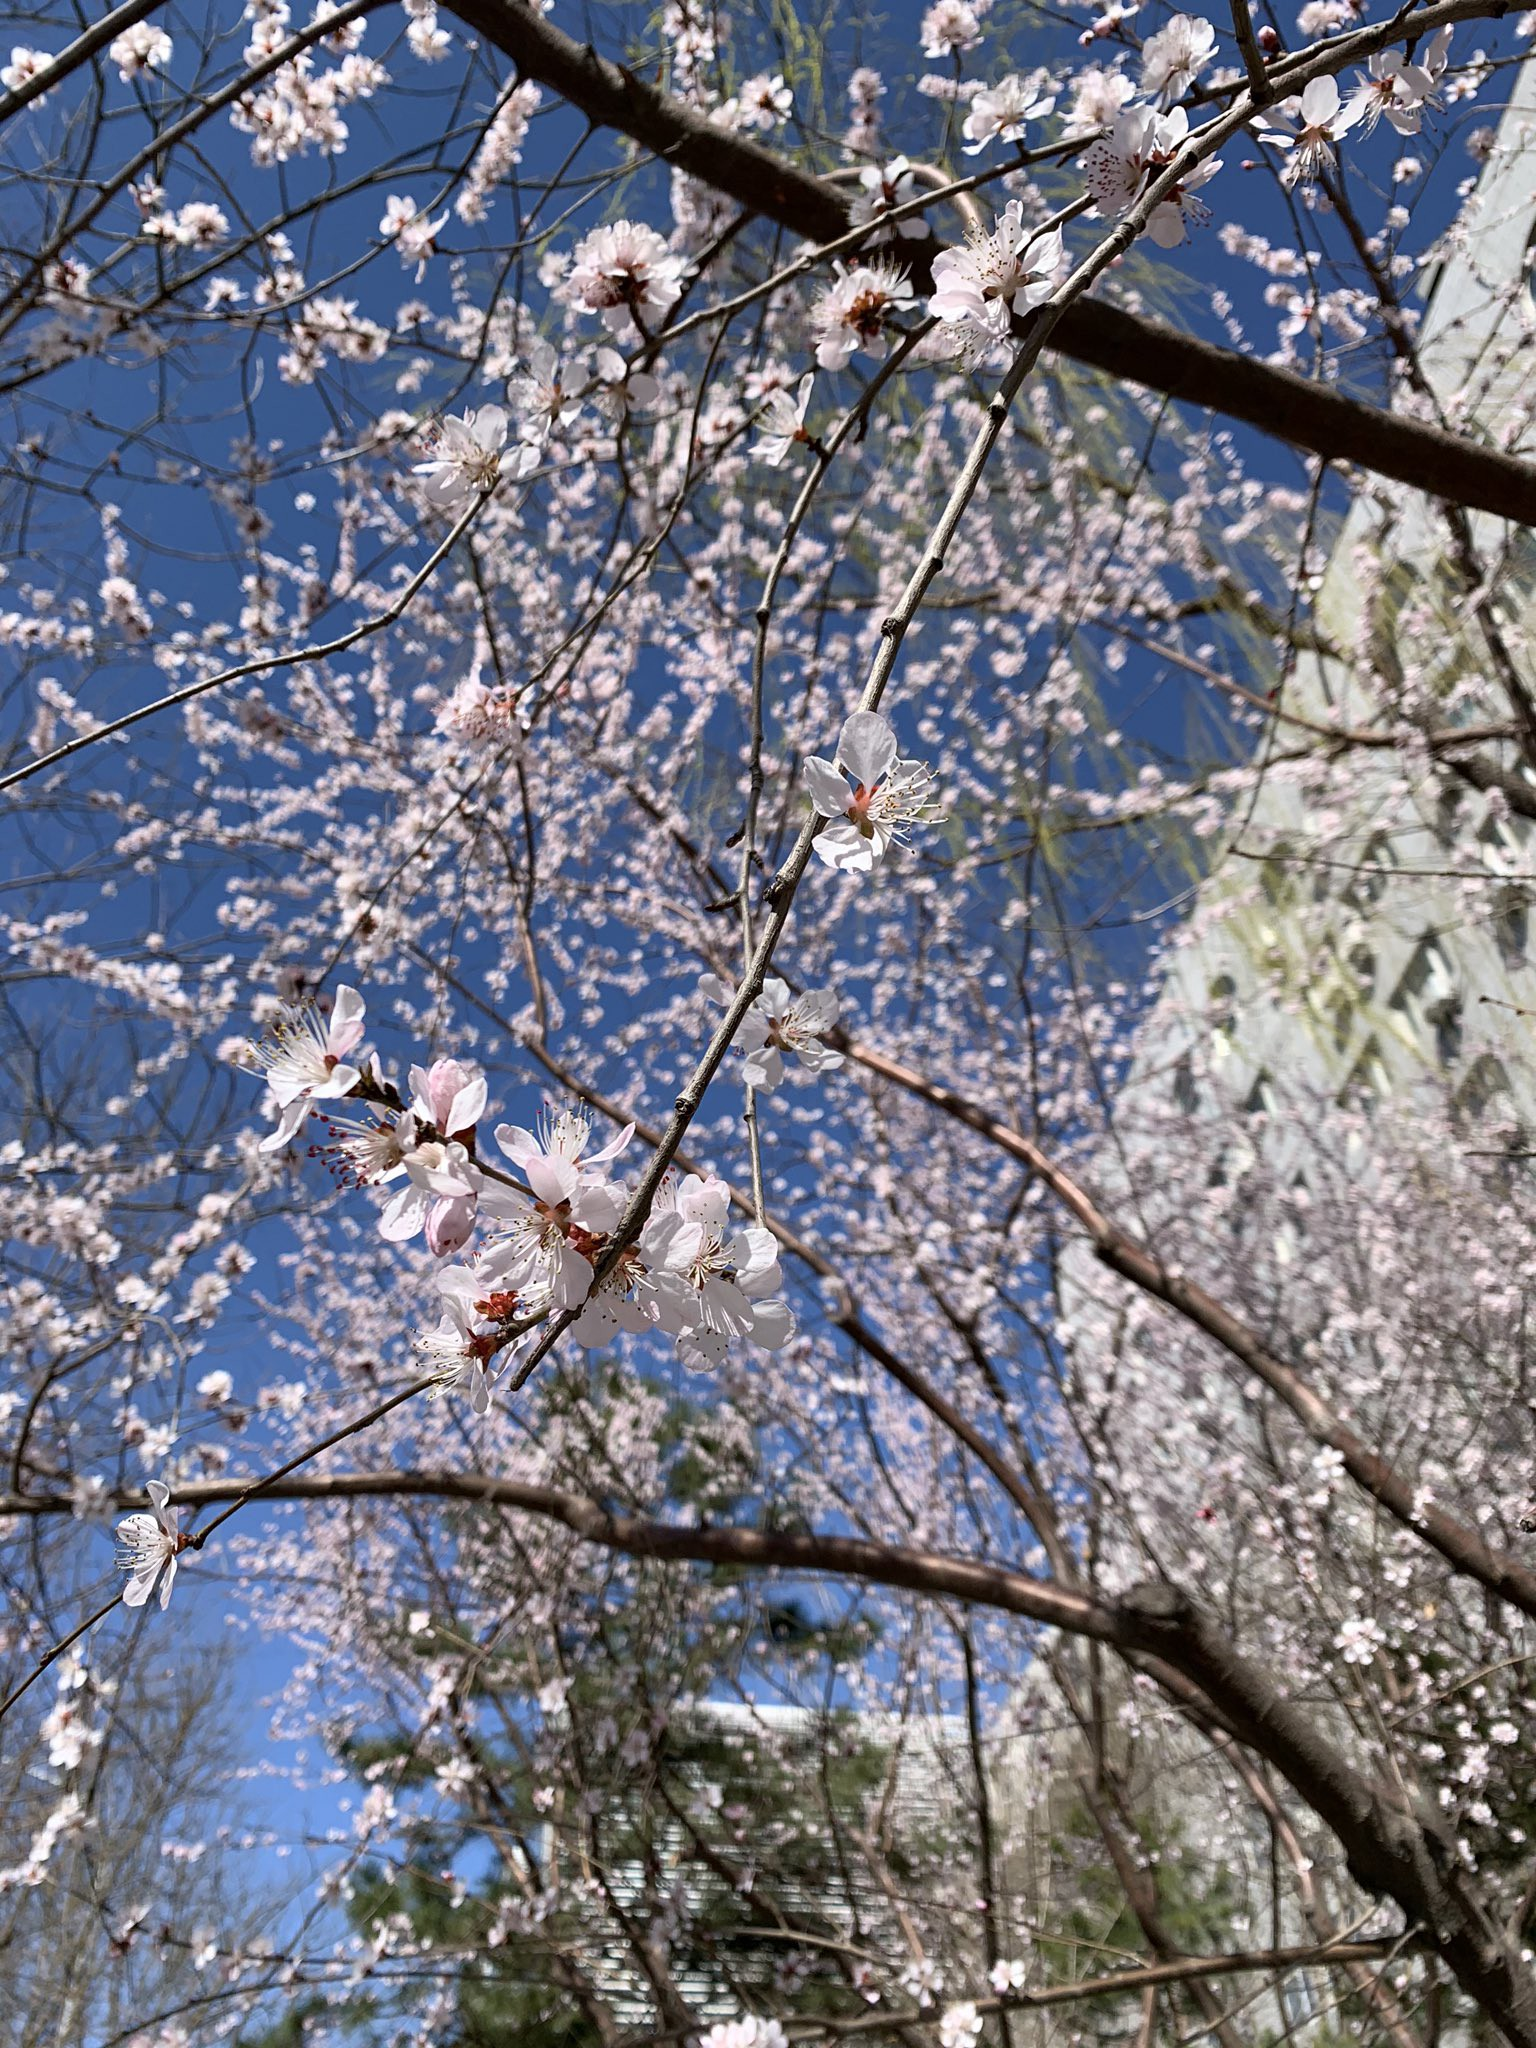 A close-up photo of cherry blossoms.